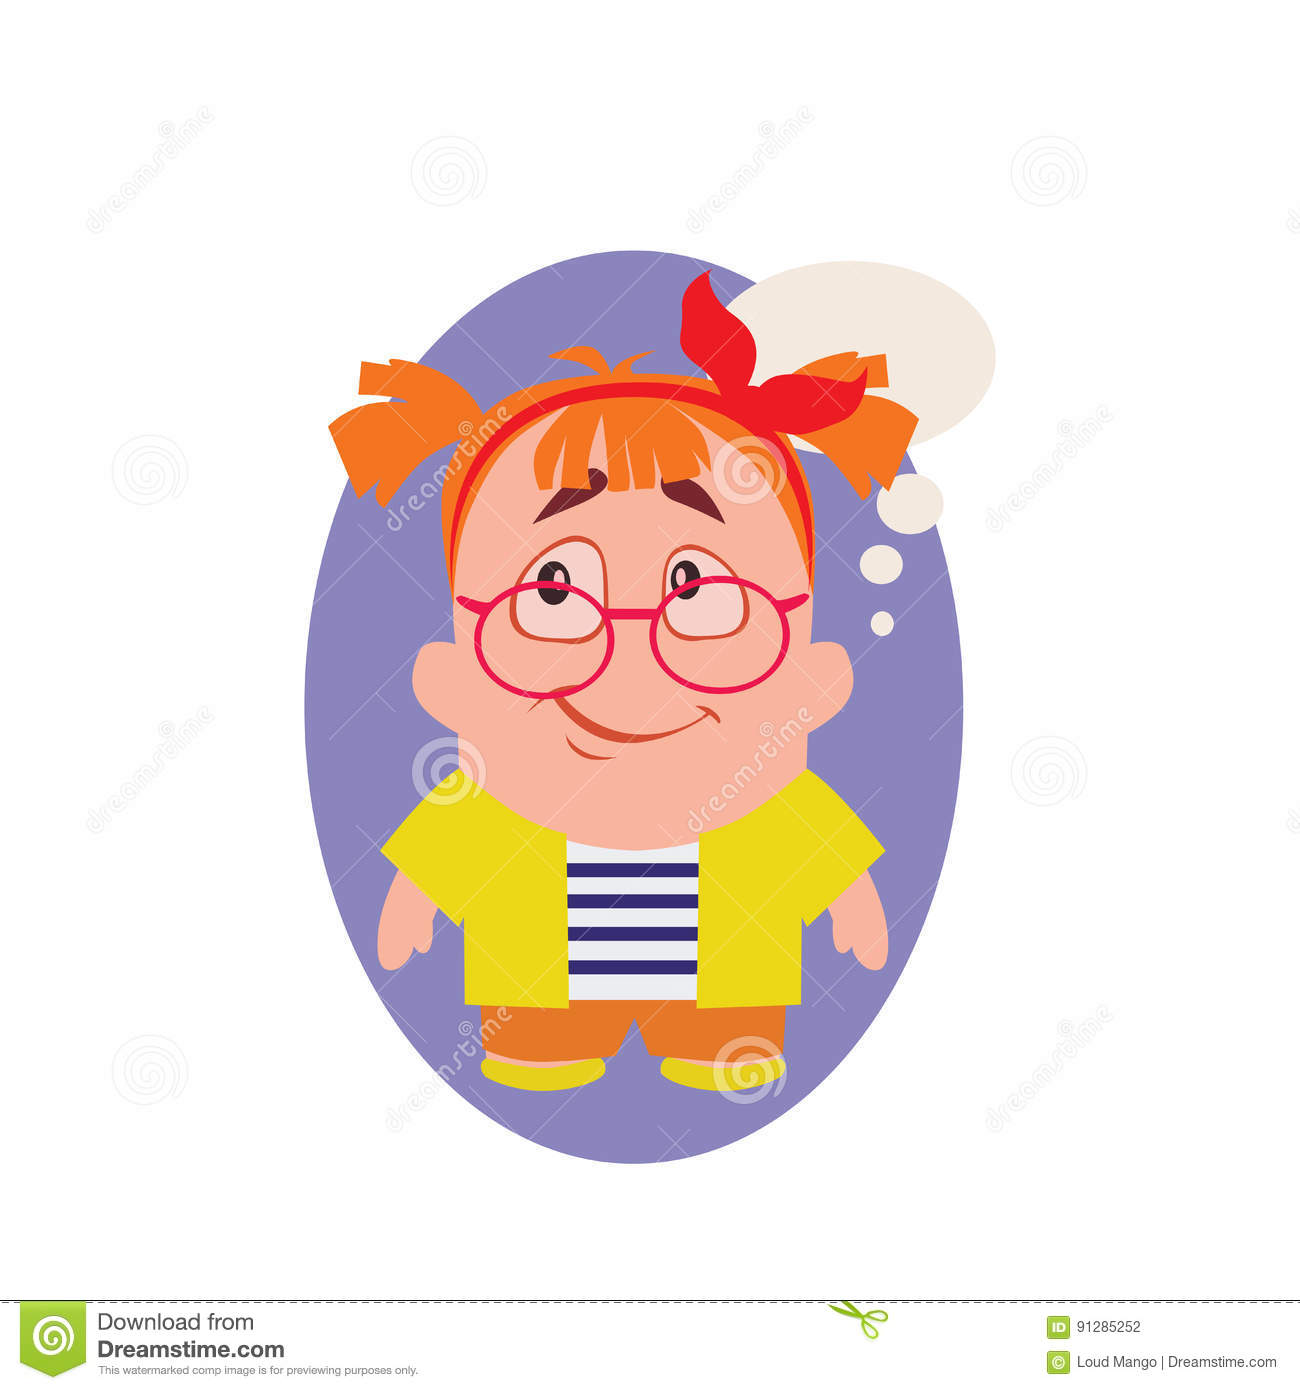 Concerned, Smiling and Avatar of Geek Little Person Cartoon Character in Flat Vector